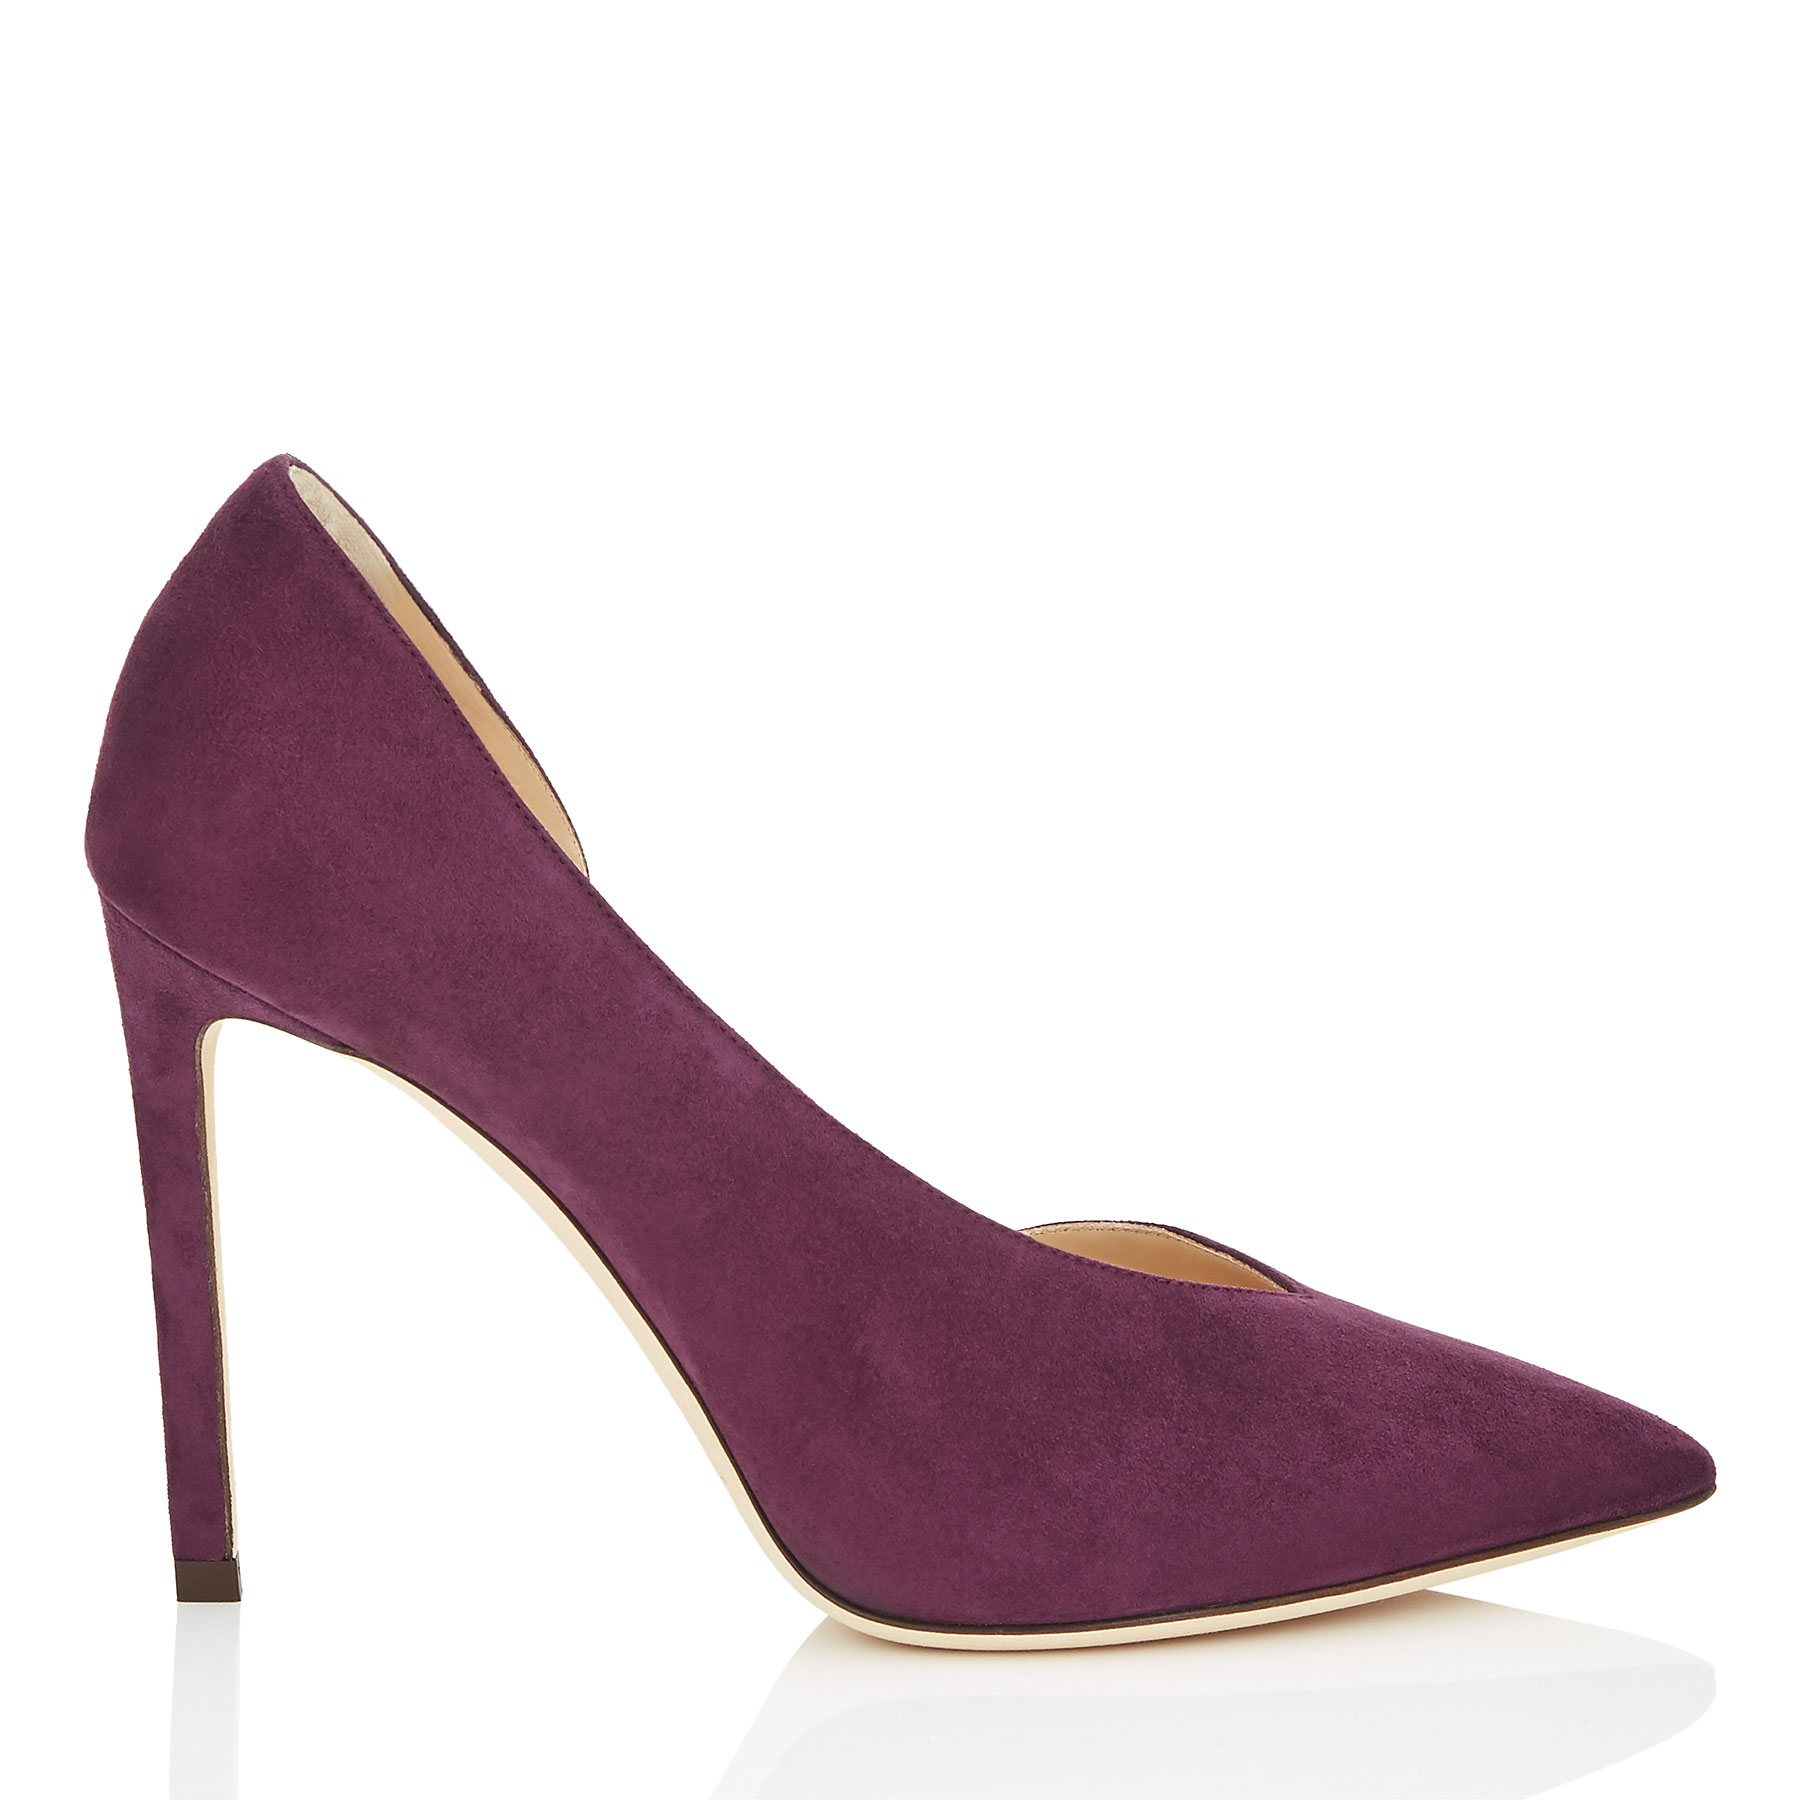 Photo of SOPHIA 100 Grape Suede Pointy Toe Pumps by Jimmy Choo womens shoes - buy Jimmy Choo footwear online